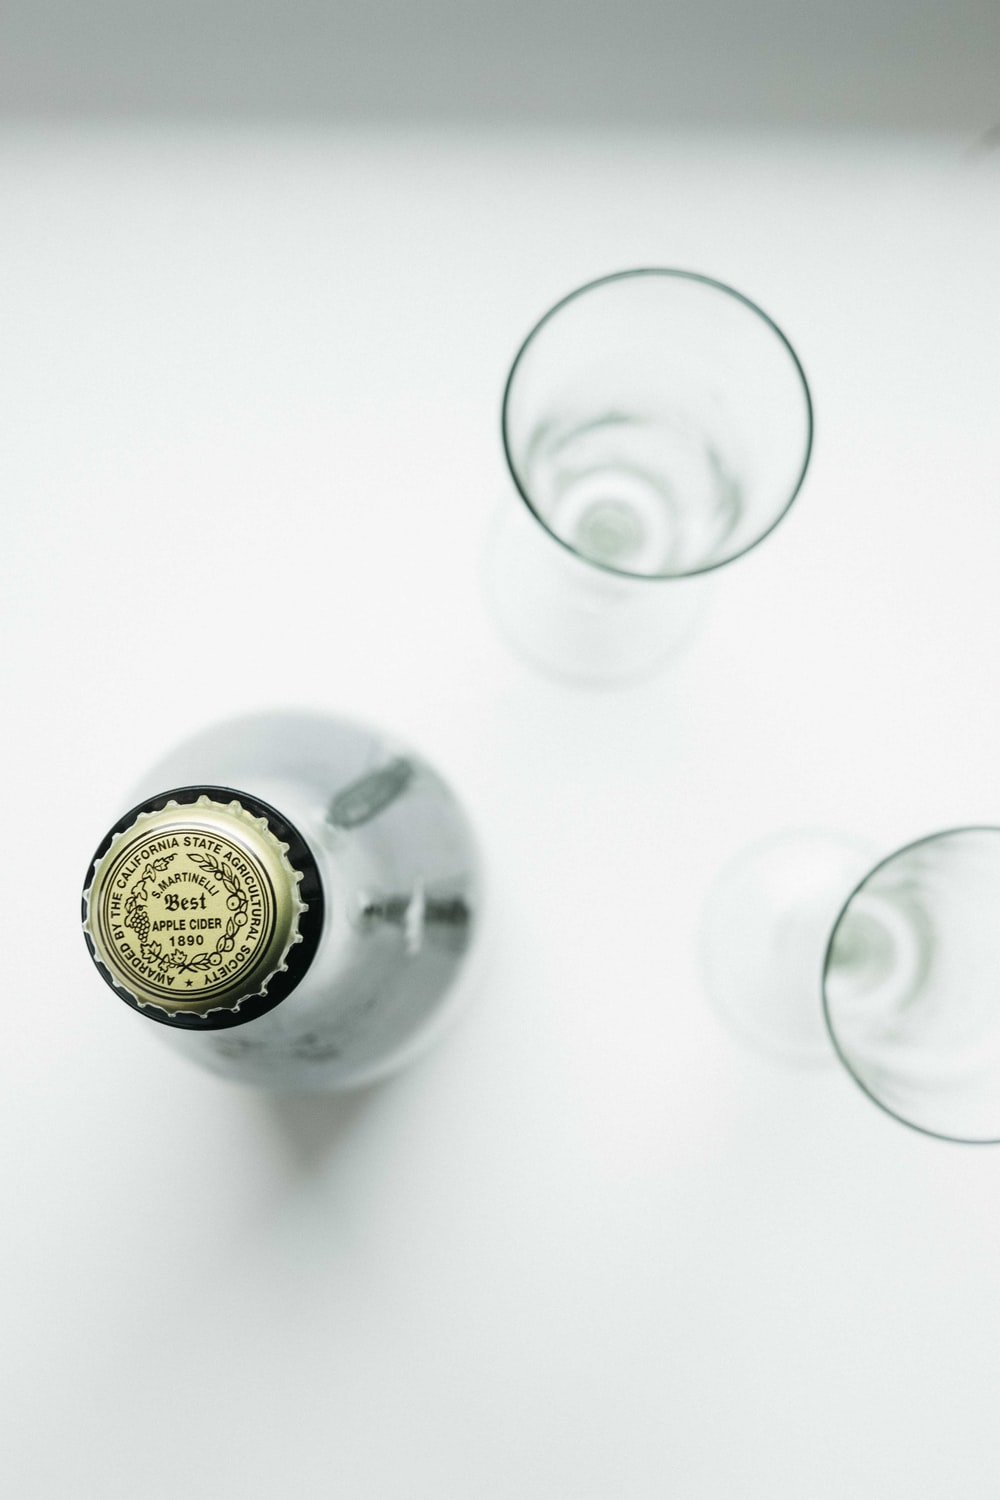 gold and silver bottle cap